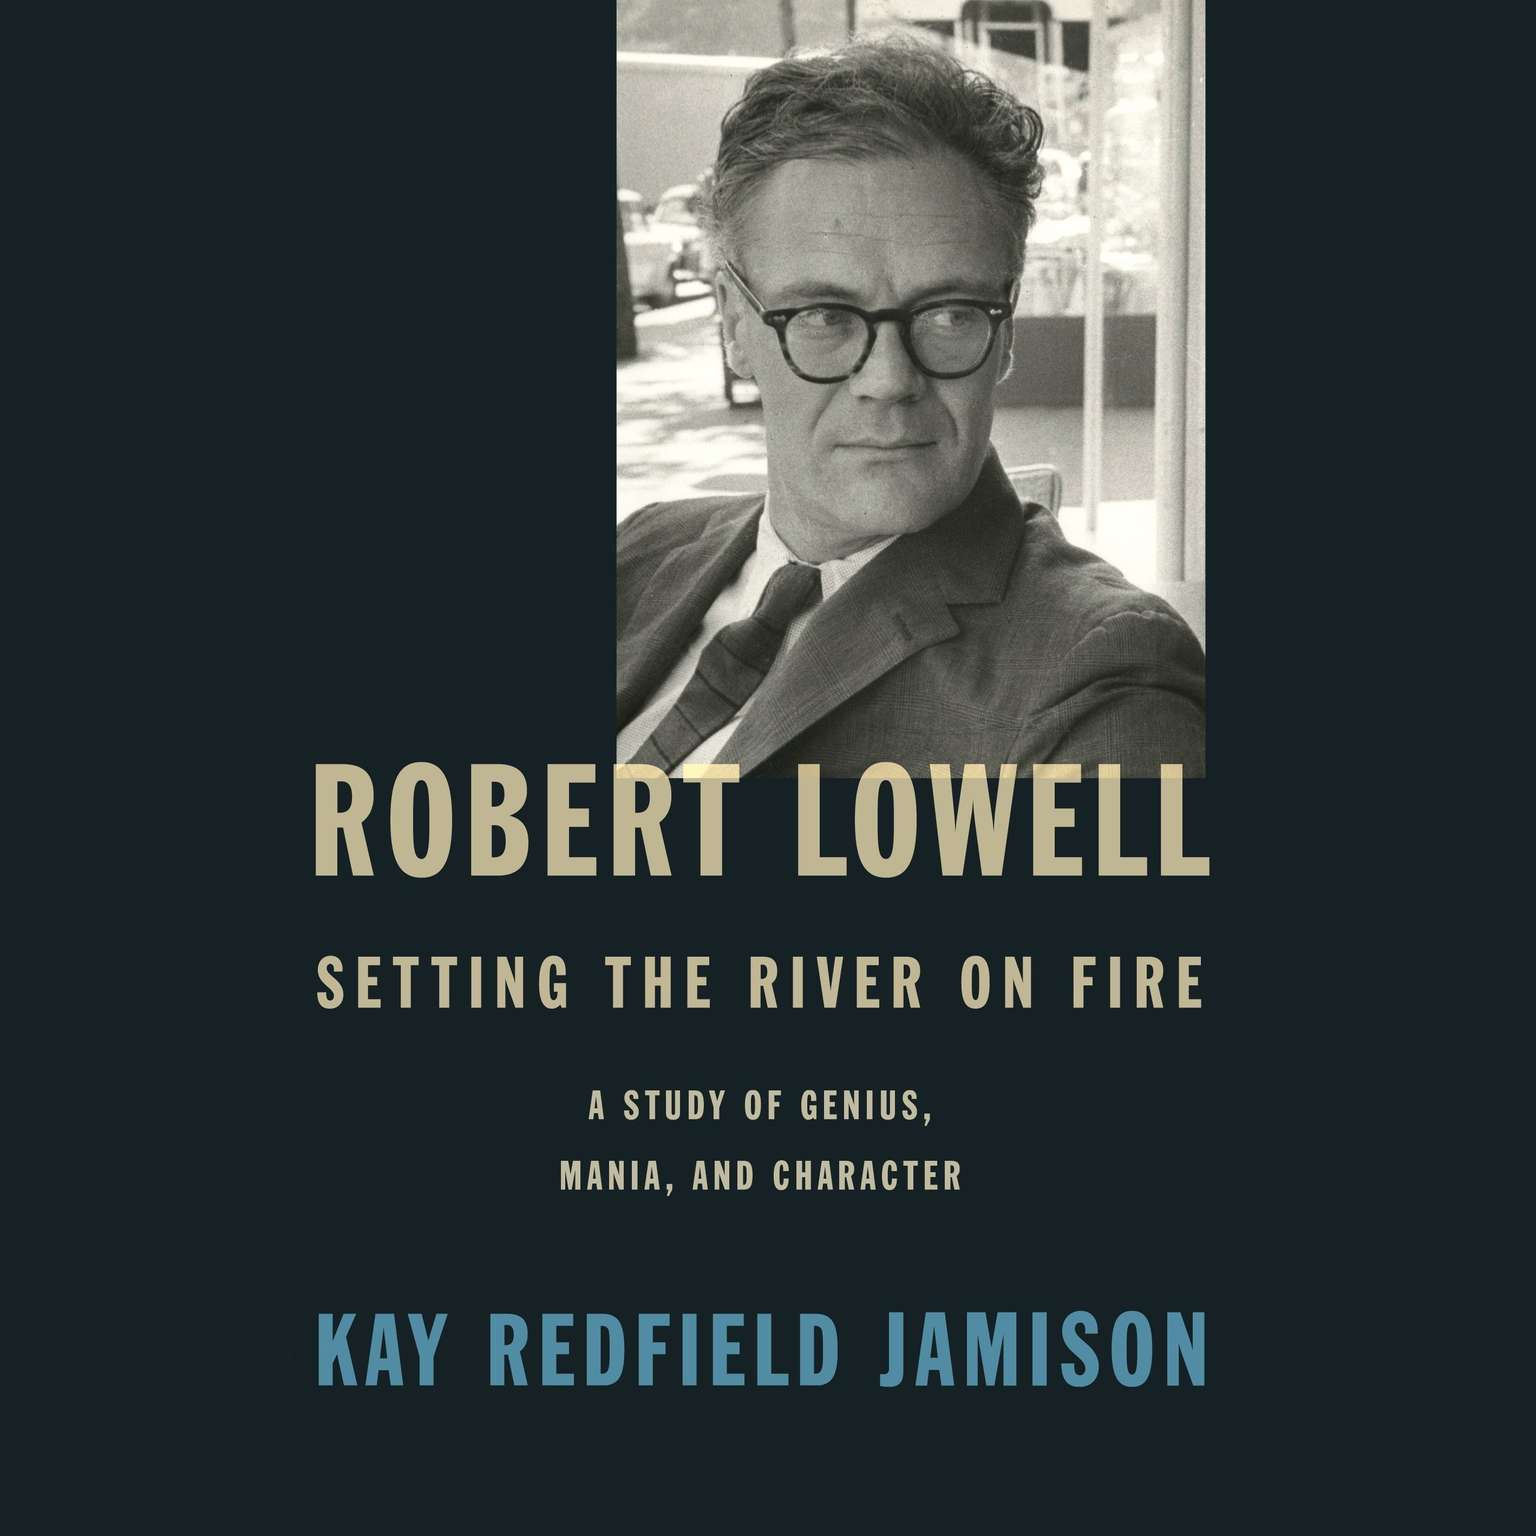 Printable Robert Lowell, Setting the River on Fire: A Study of Genius, Mania, and Character Audiobook Cover Art